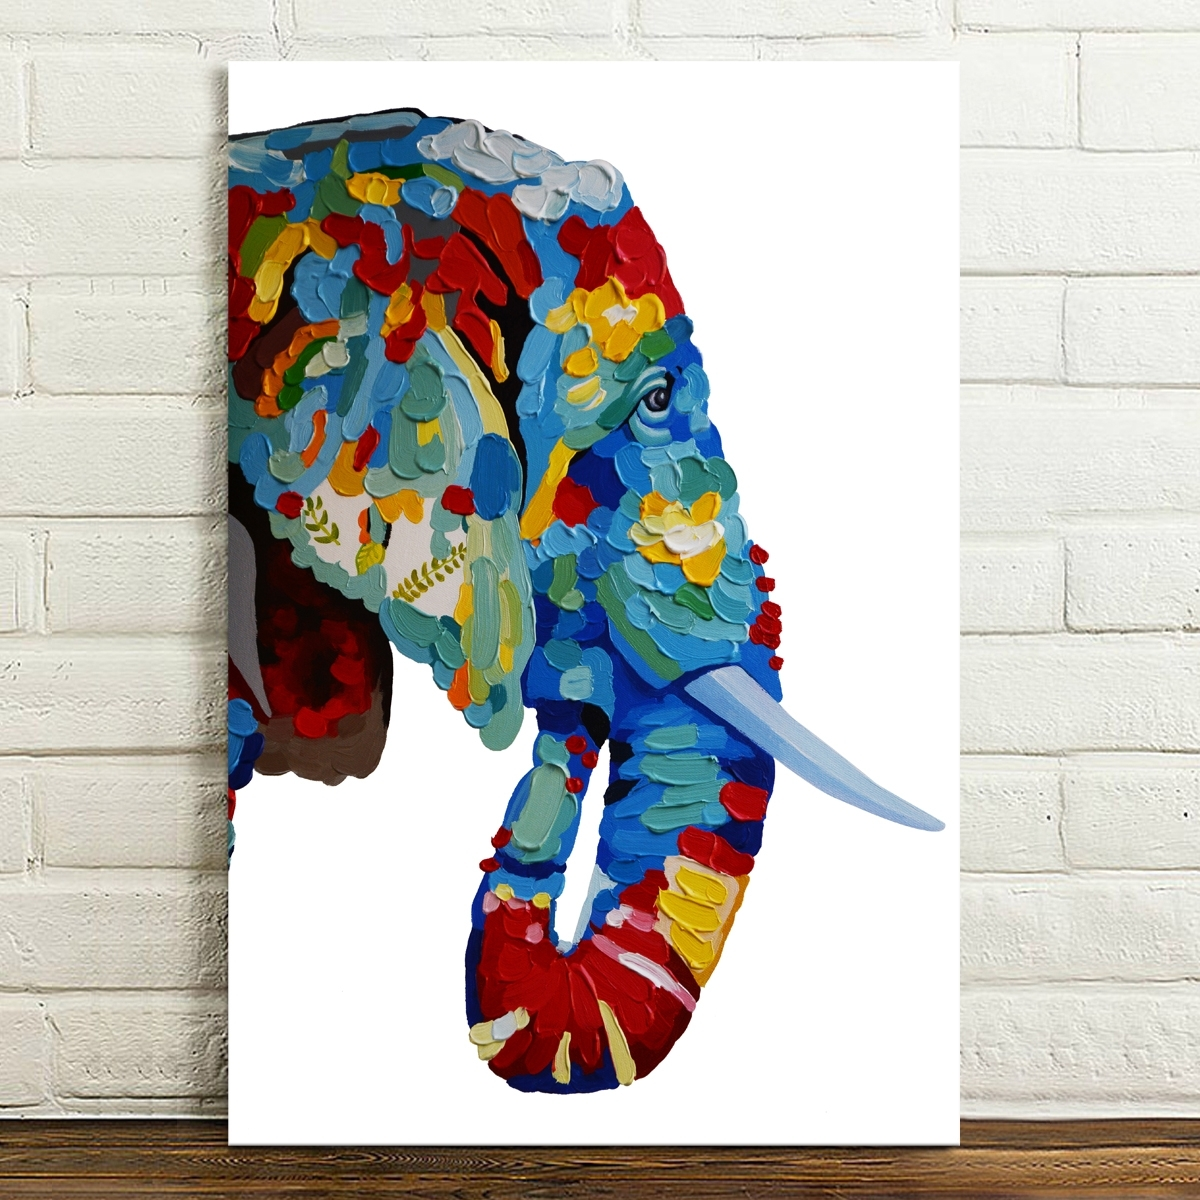 Abstract Canvas Prints Elephant Paintings Posters Home Decor Wall Regarding Most Up To Date Abstract Textile Wall Art (View 1 of 15)